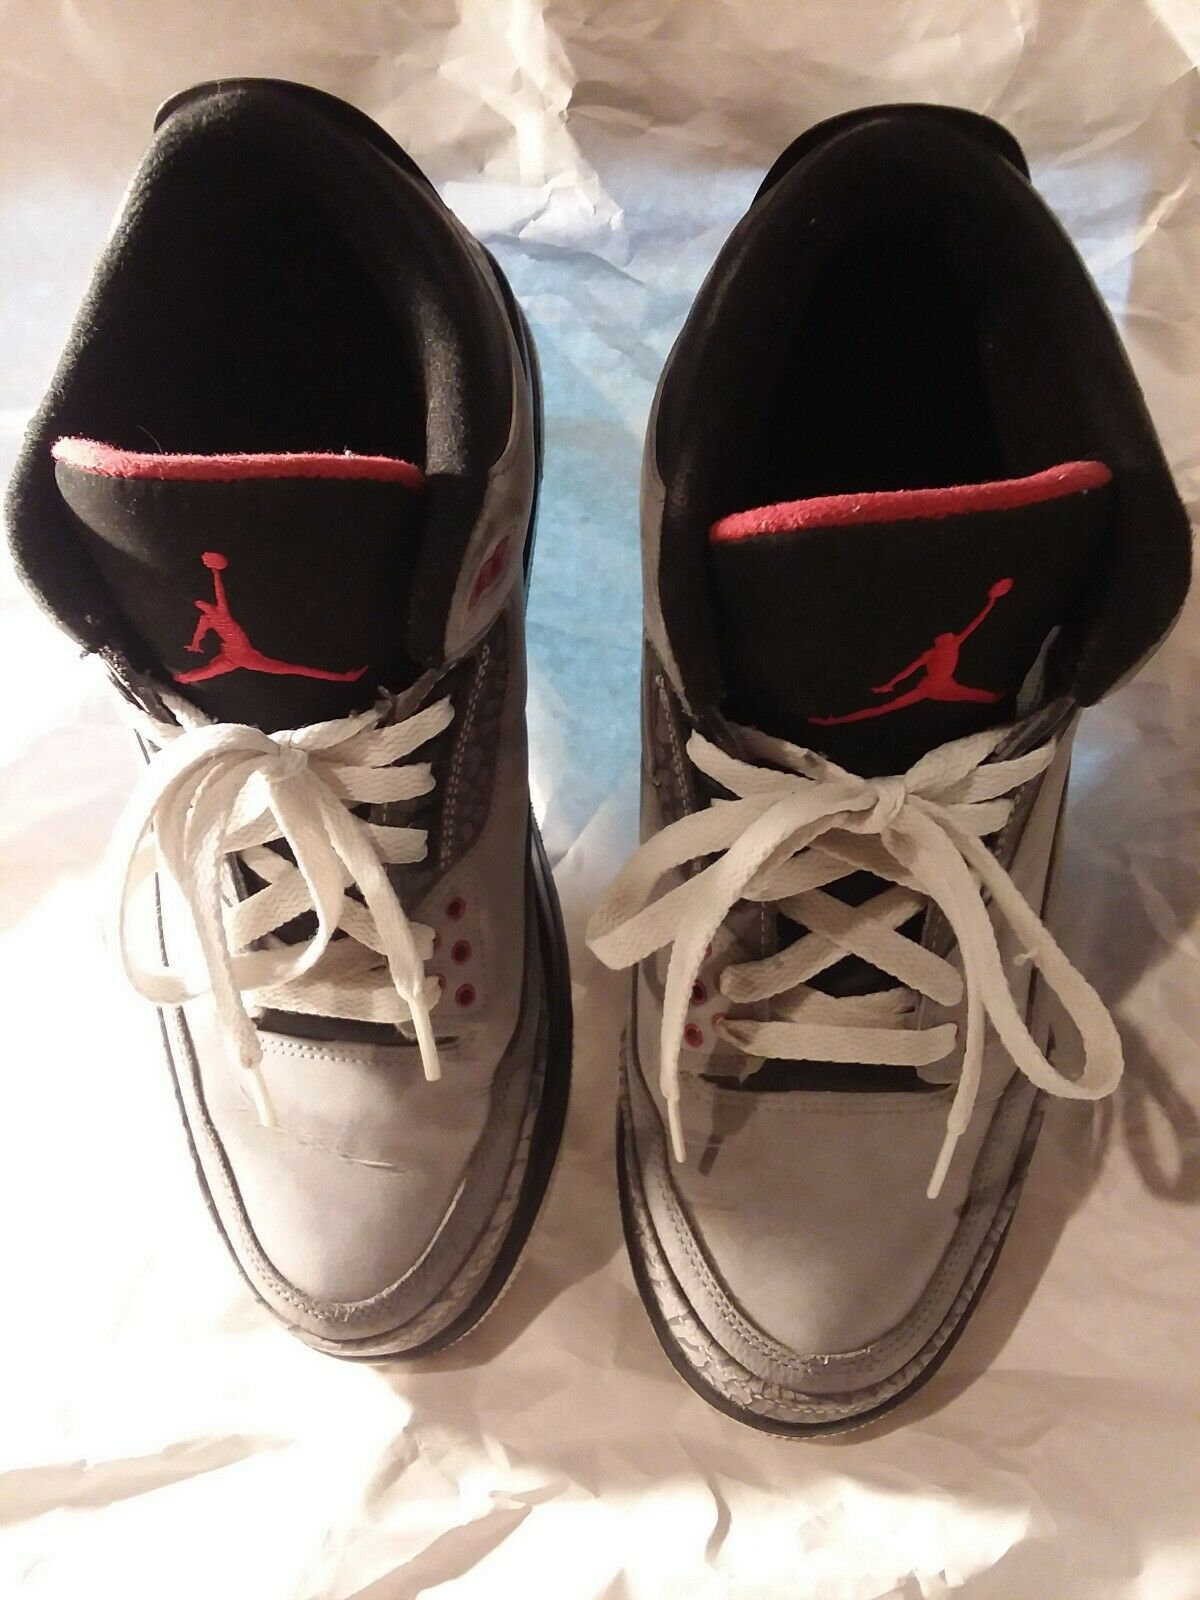 Nike Air Jordan Retro 3 Stealth ( 136064-003 ) -  Size 10.5.